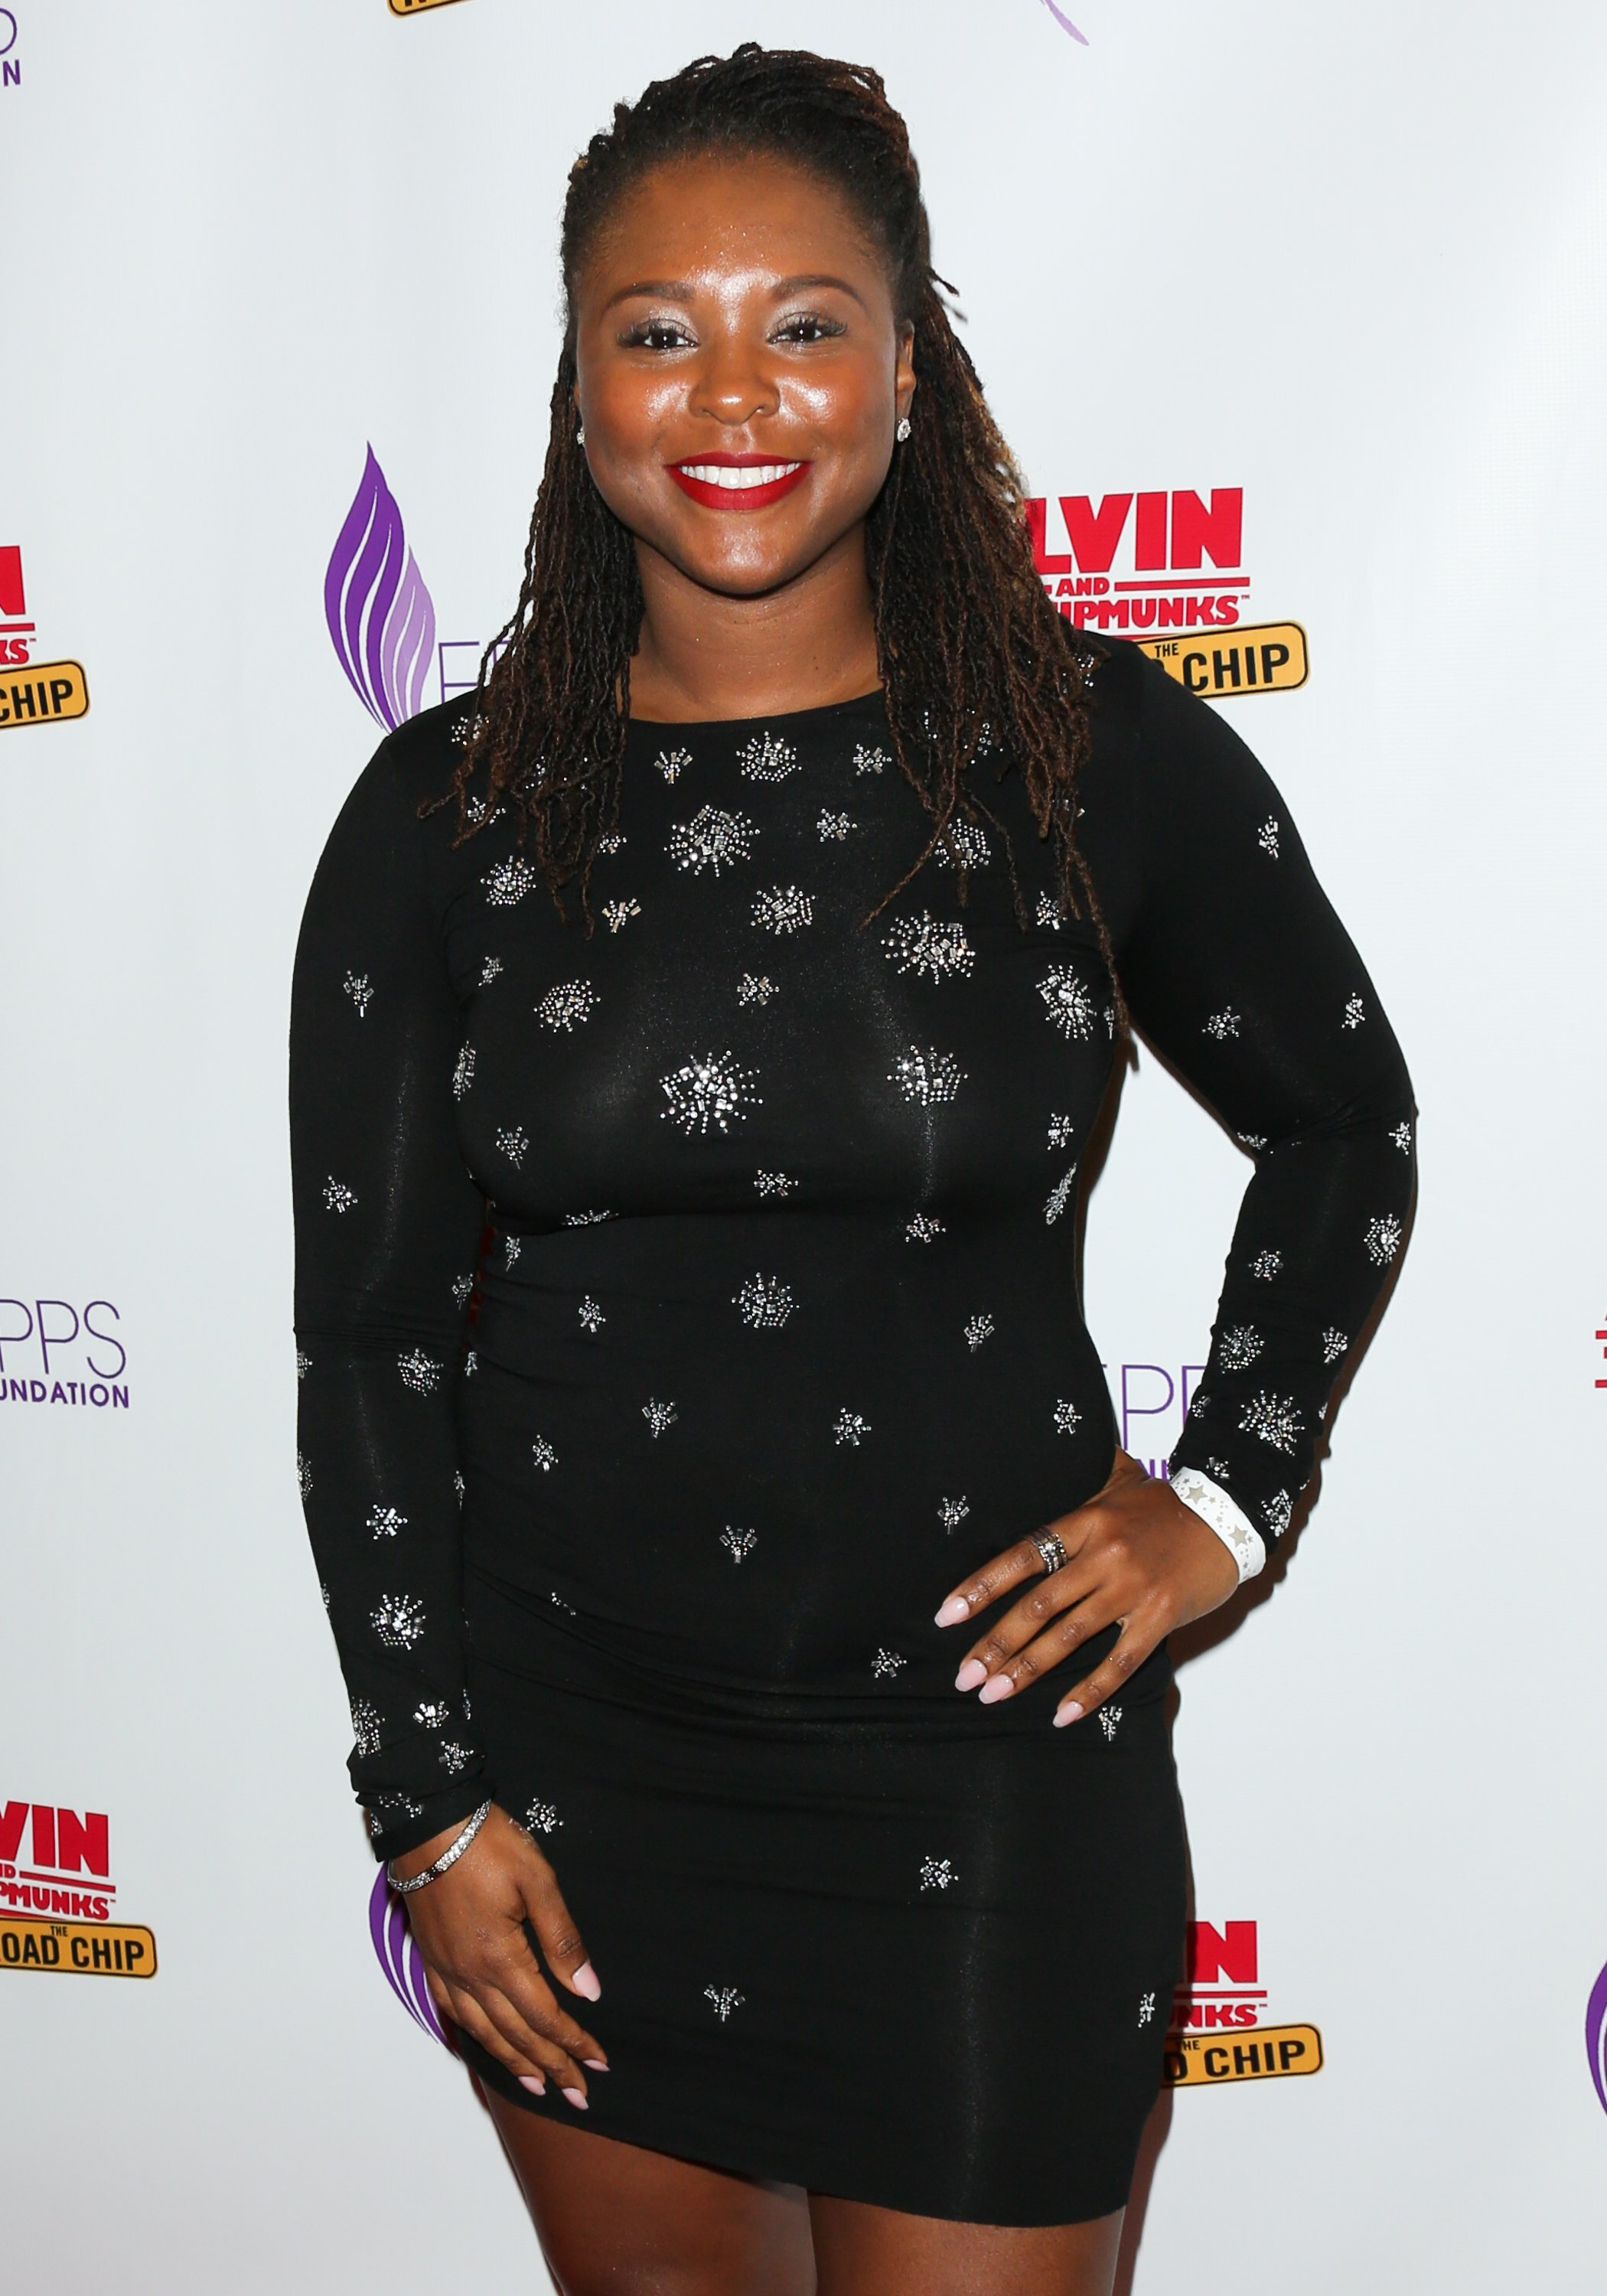 Torrei Hart attending a film screening in California in December 2013. | Photo: Getty Images